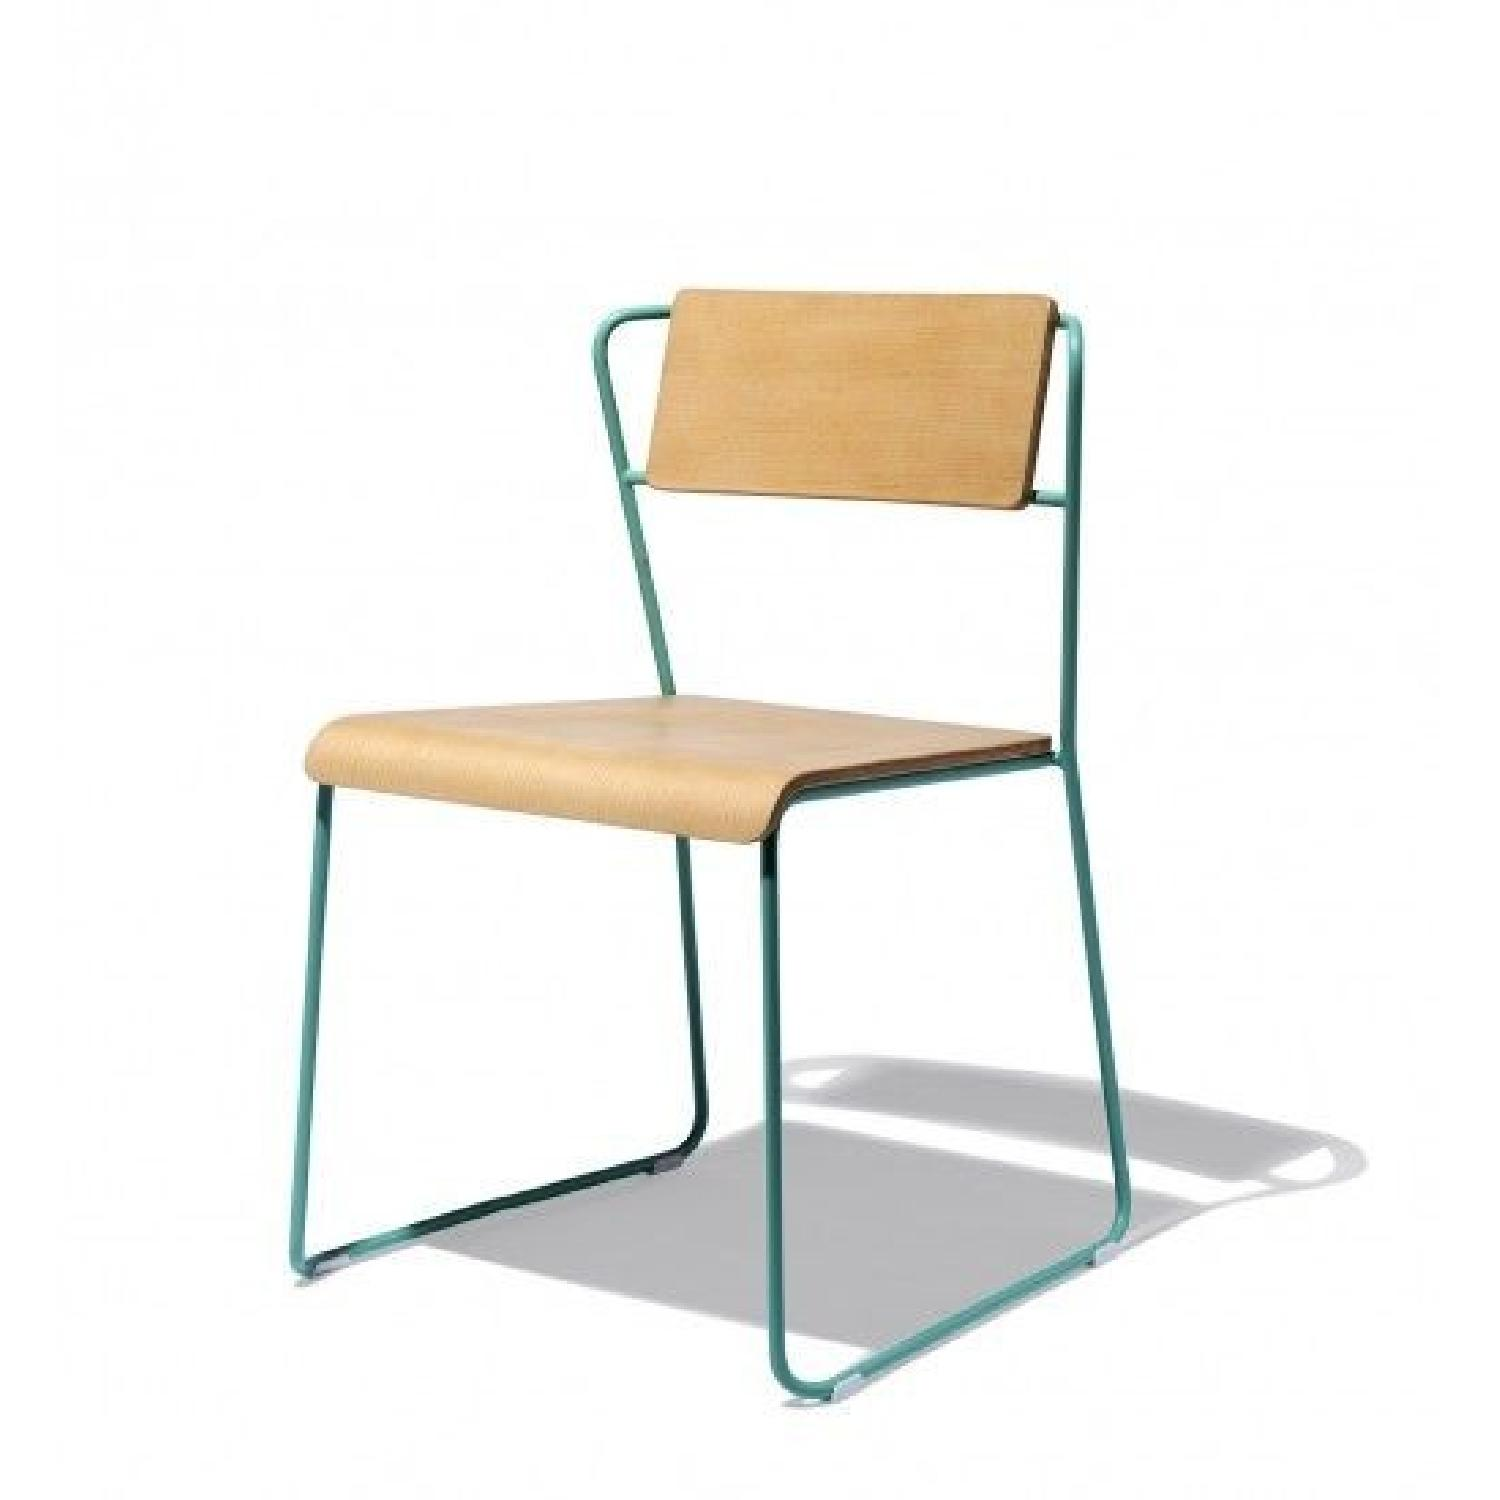 Industry West Transit Chairs in Peppermint - image-0